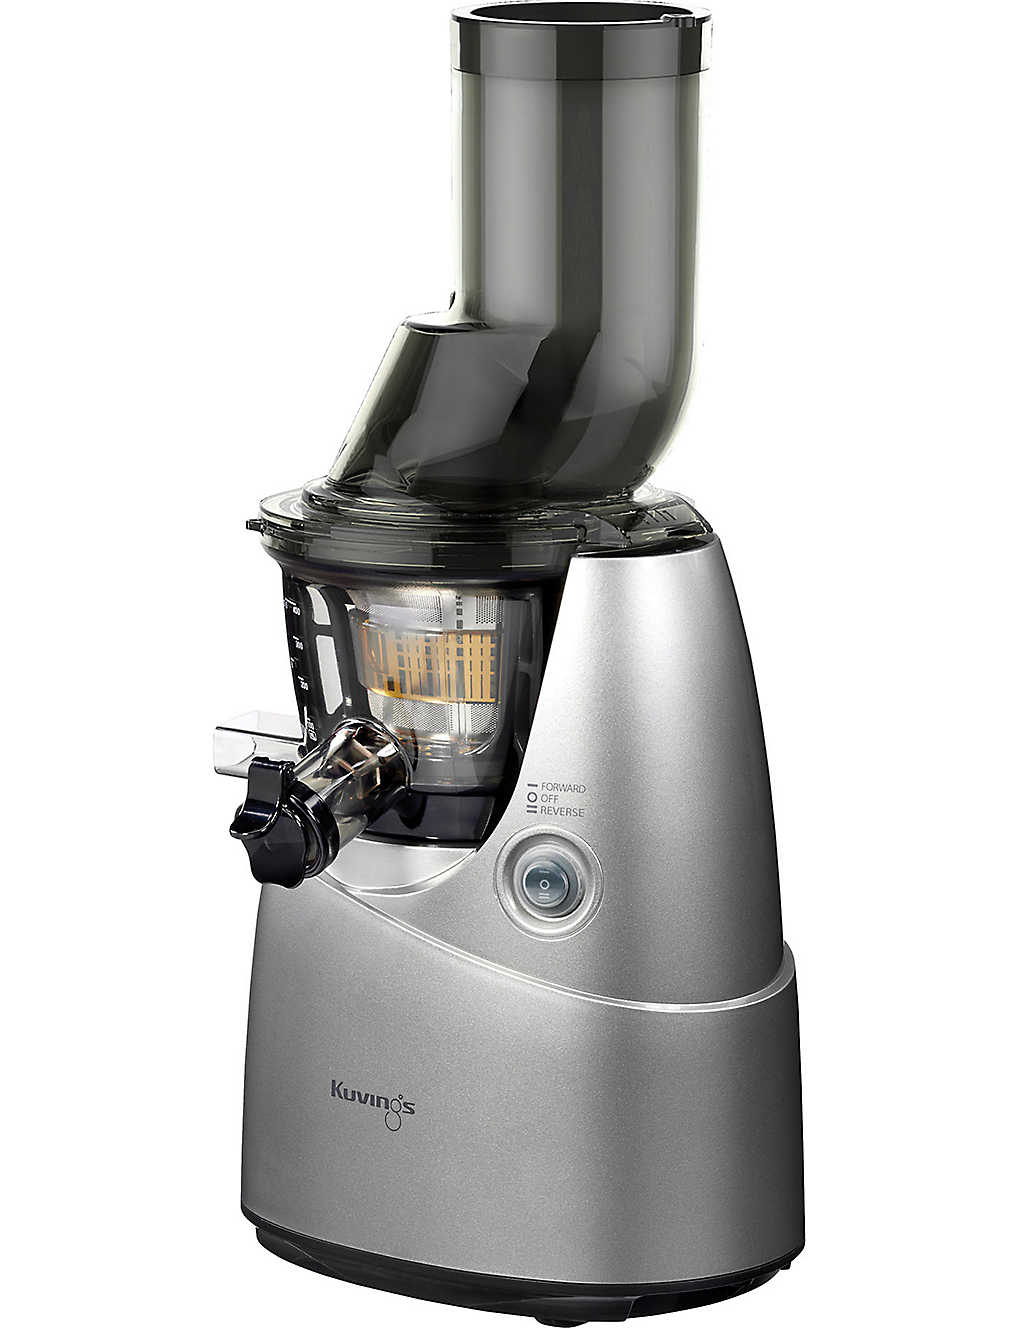 KUVINGS Whole Slow Juicer silver |